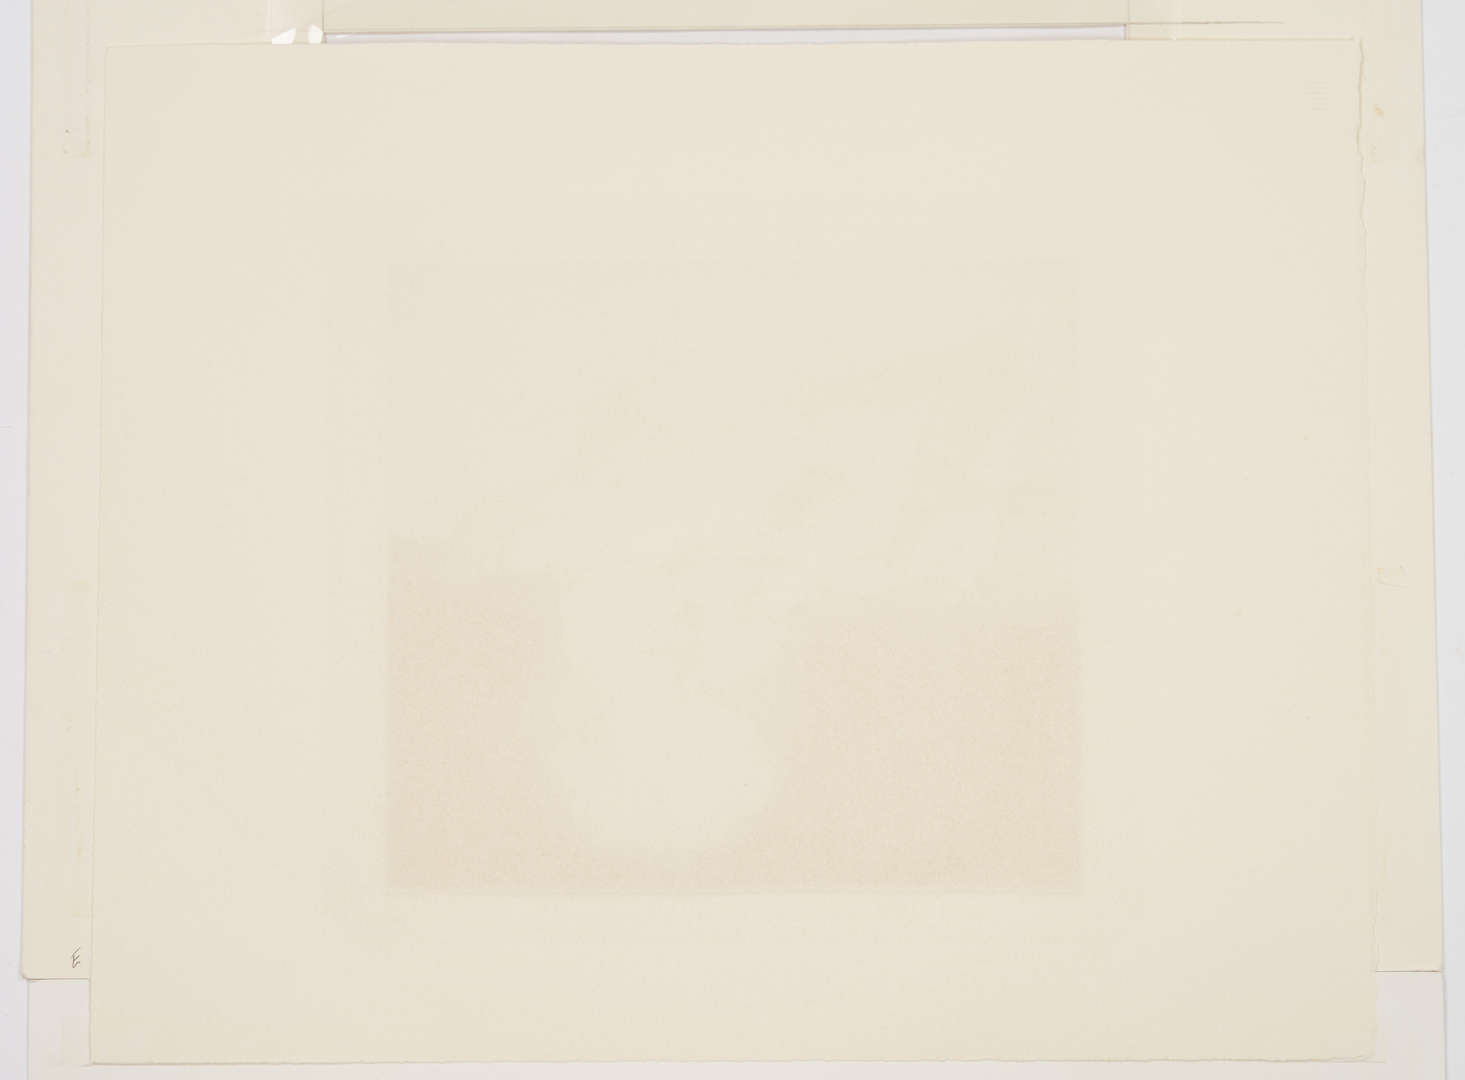 Lot 574: 2 Will Barnett Artist Proof Prints, incl. Reflections, The Zither